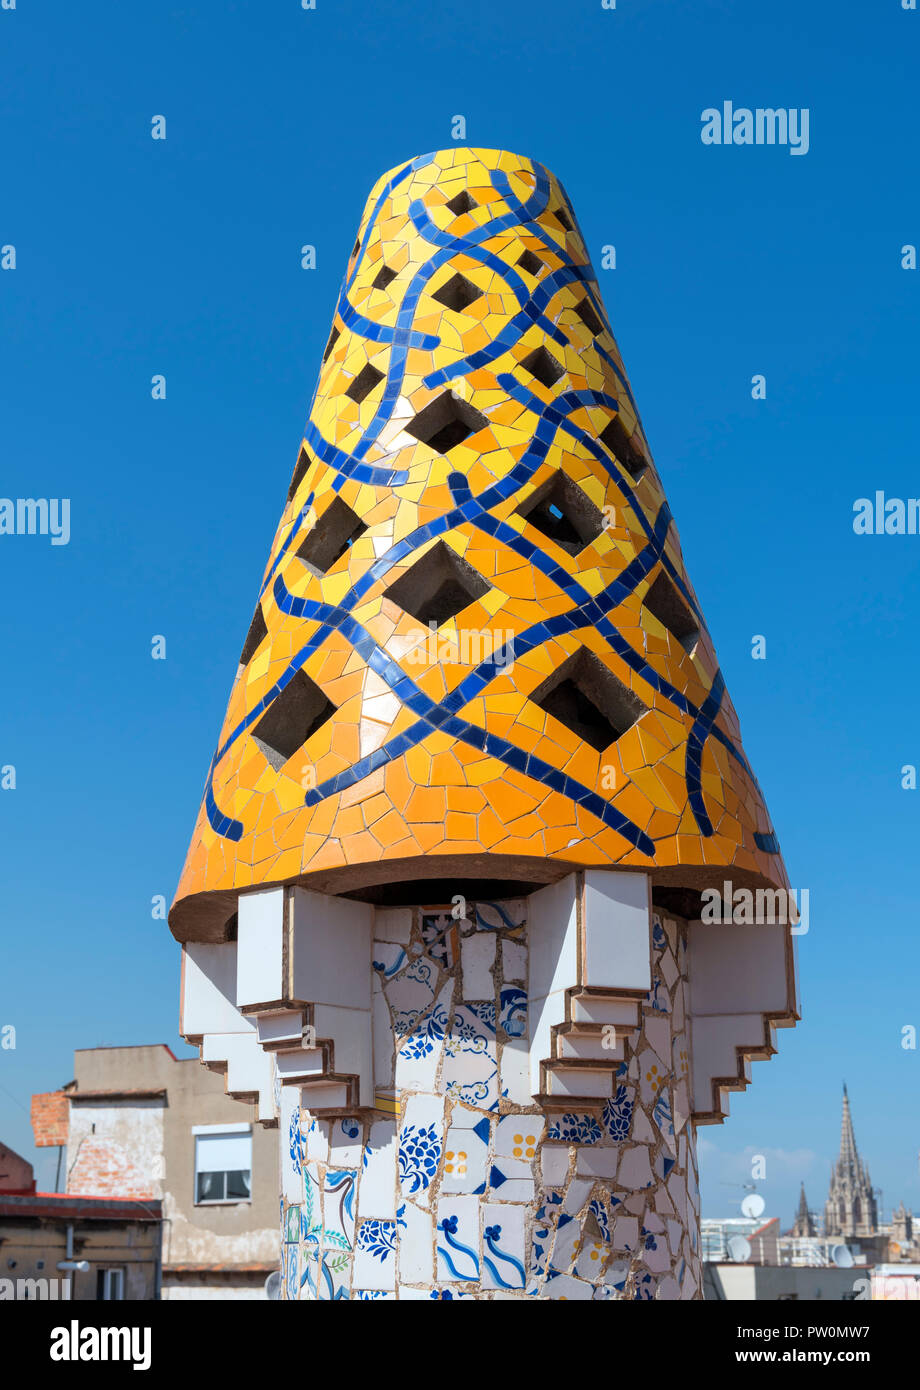 Decorative chimney pot on the roof of Antoni Gaudi's Palau Guell, El Raval, Barcelona, Spain - Stock Image